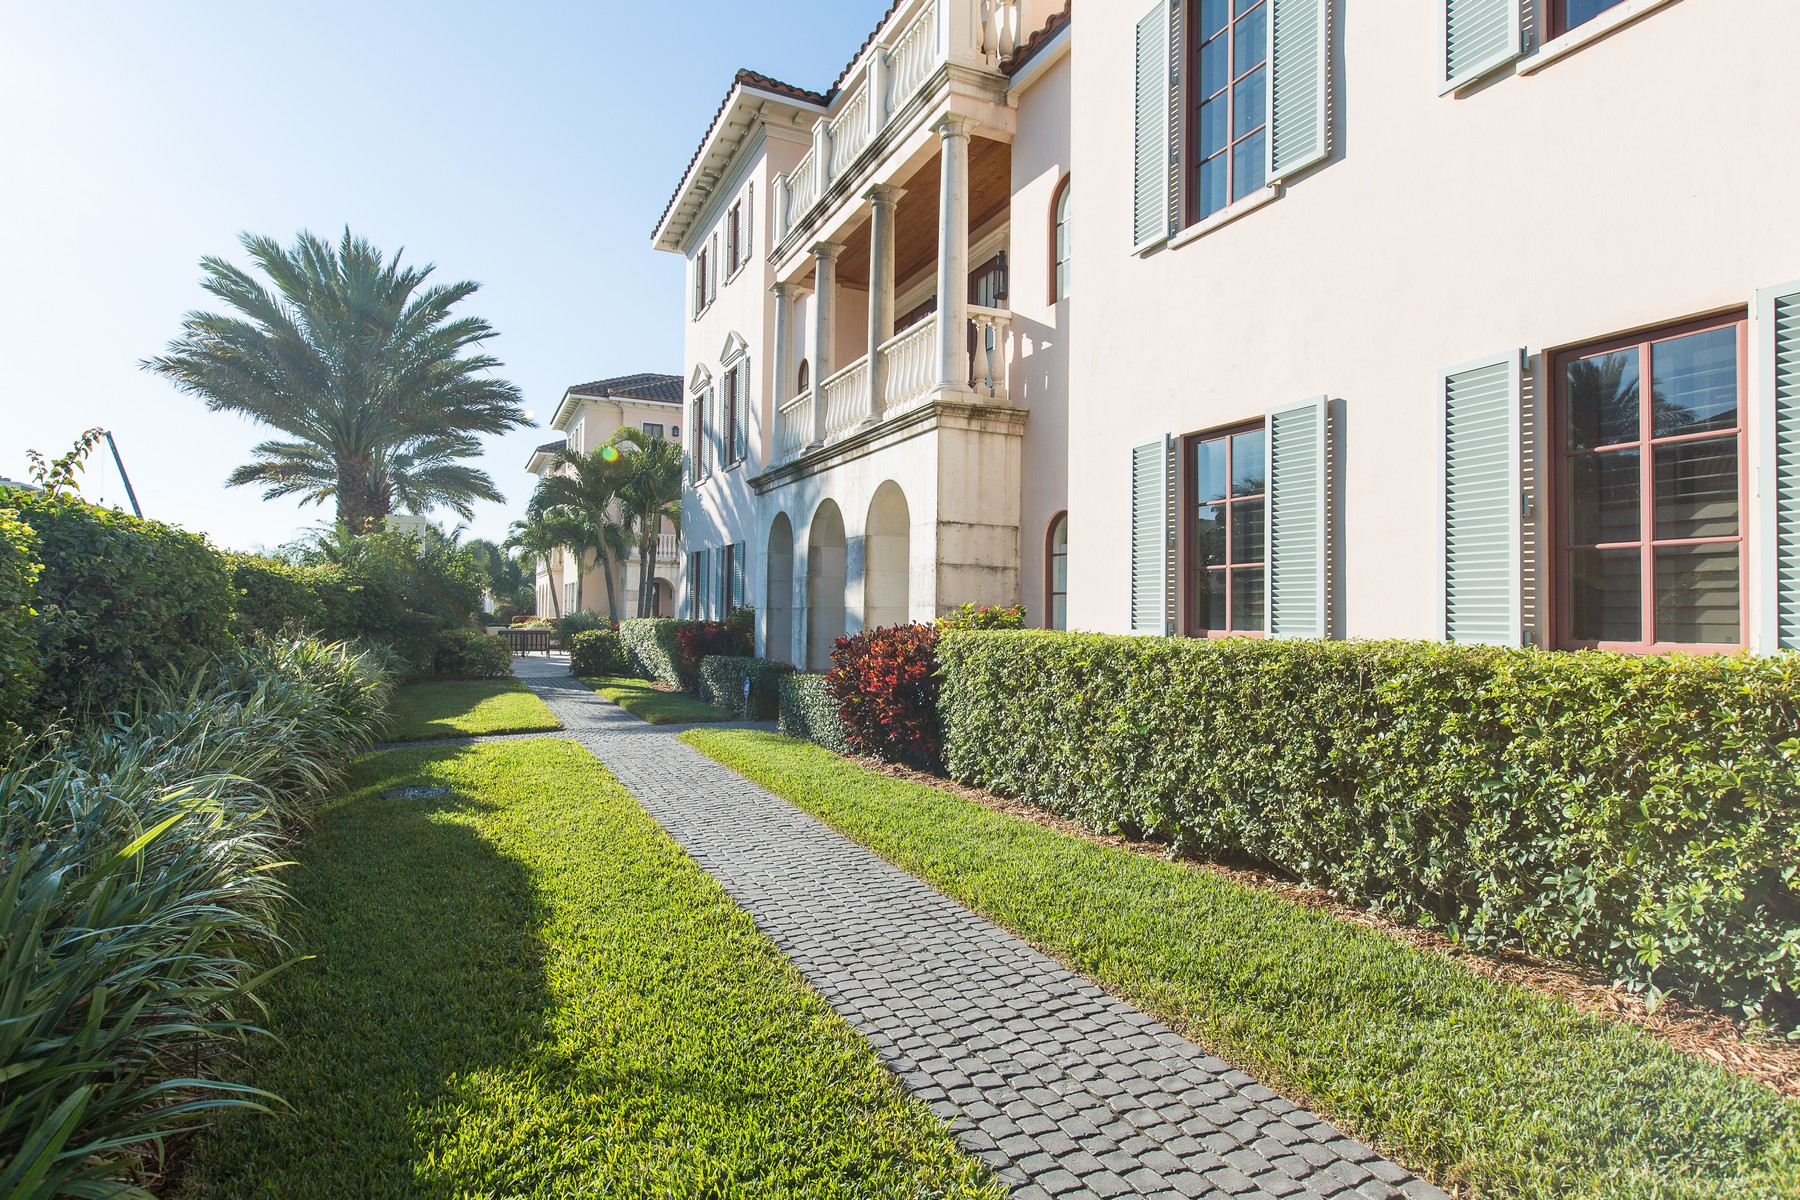 Additional photo for property listing at Elegant Italian Villa by Beach 1515 Ocean Drive #9 Vero Beach, Florida 32963 United States